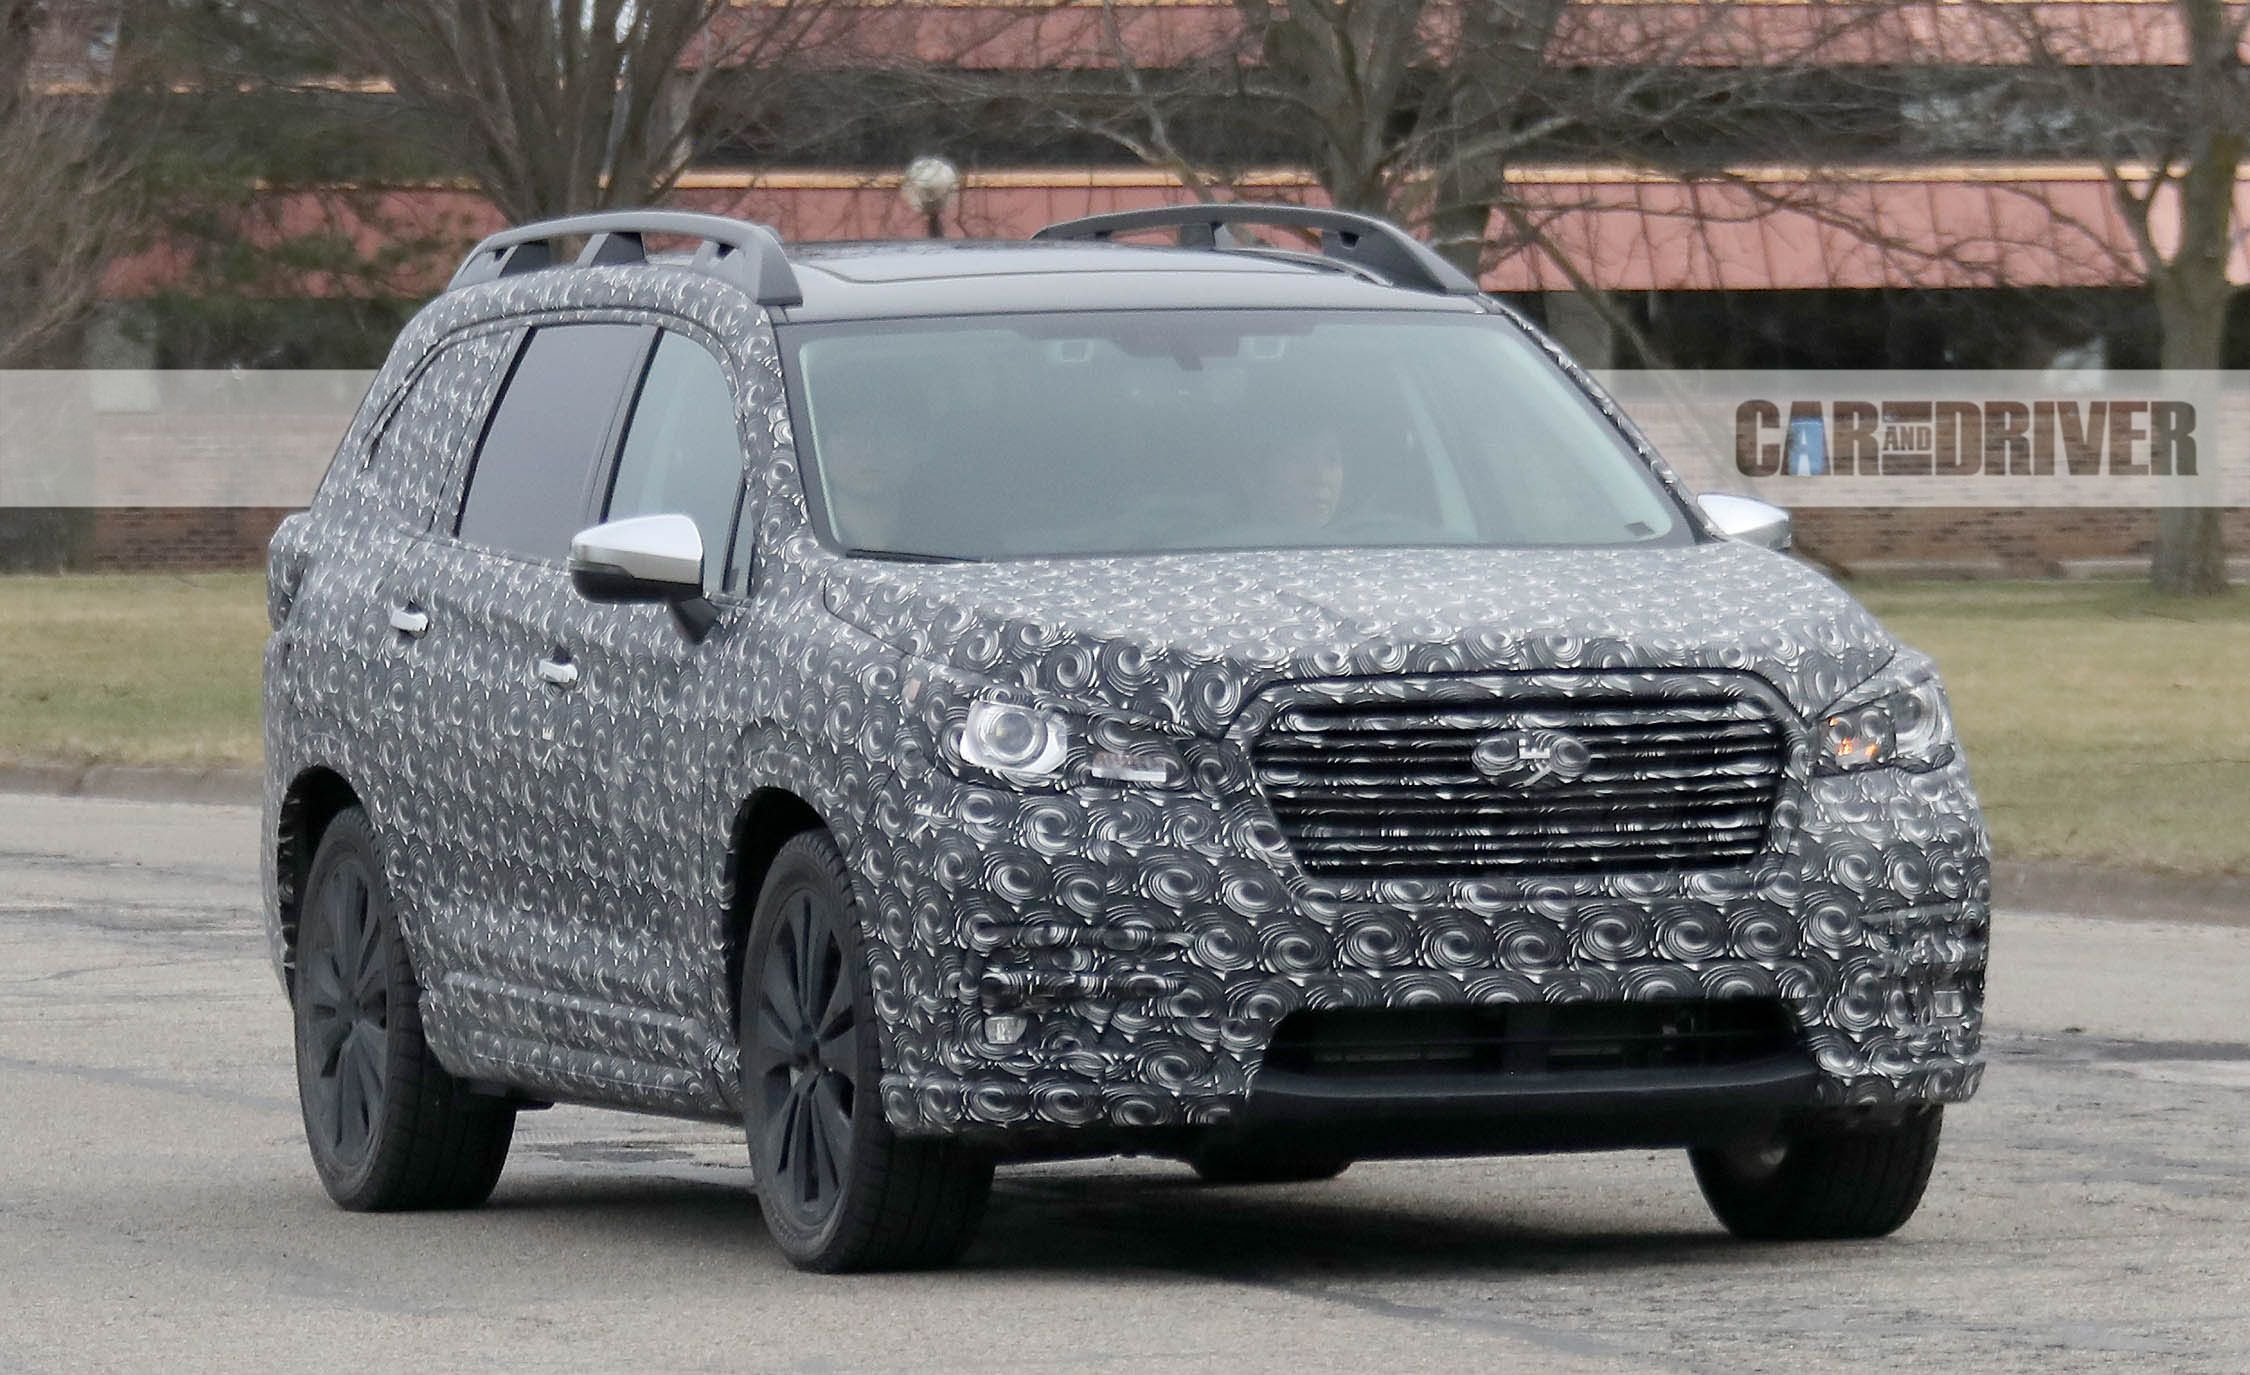 2018 Subaru Ascent Spied: The Three-Row Subie Comes into Sharper Focus